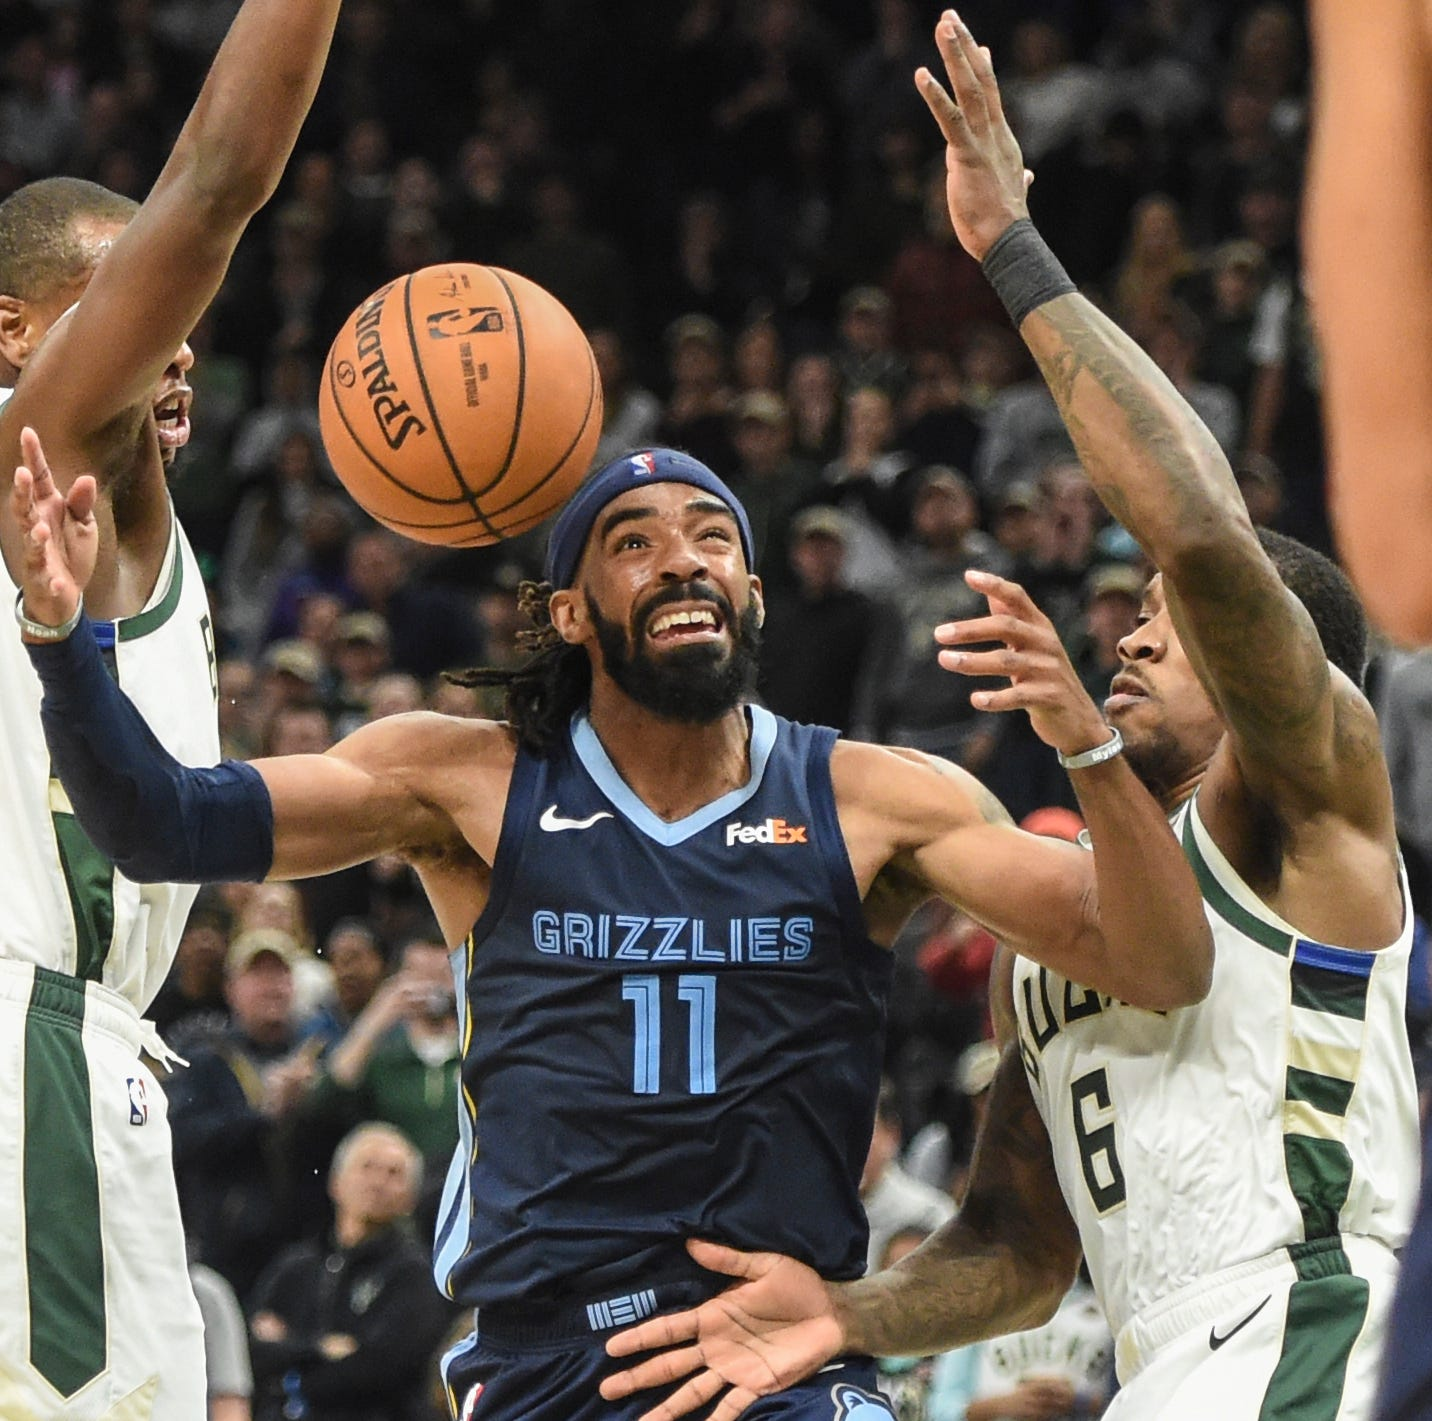 Grizzlies attempt to follow up 'culture building win'